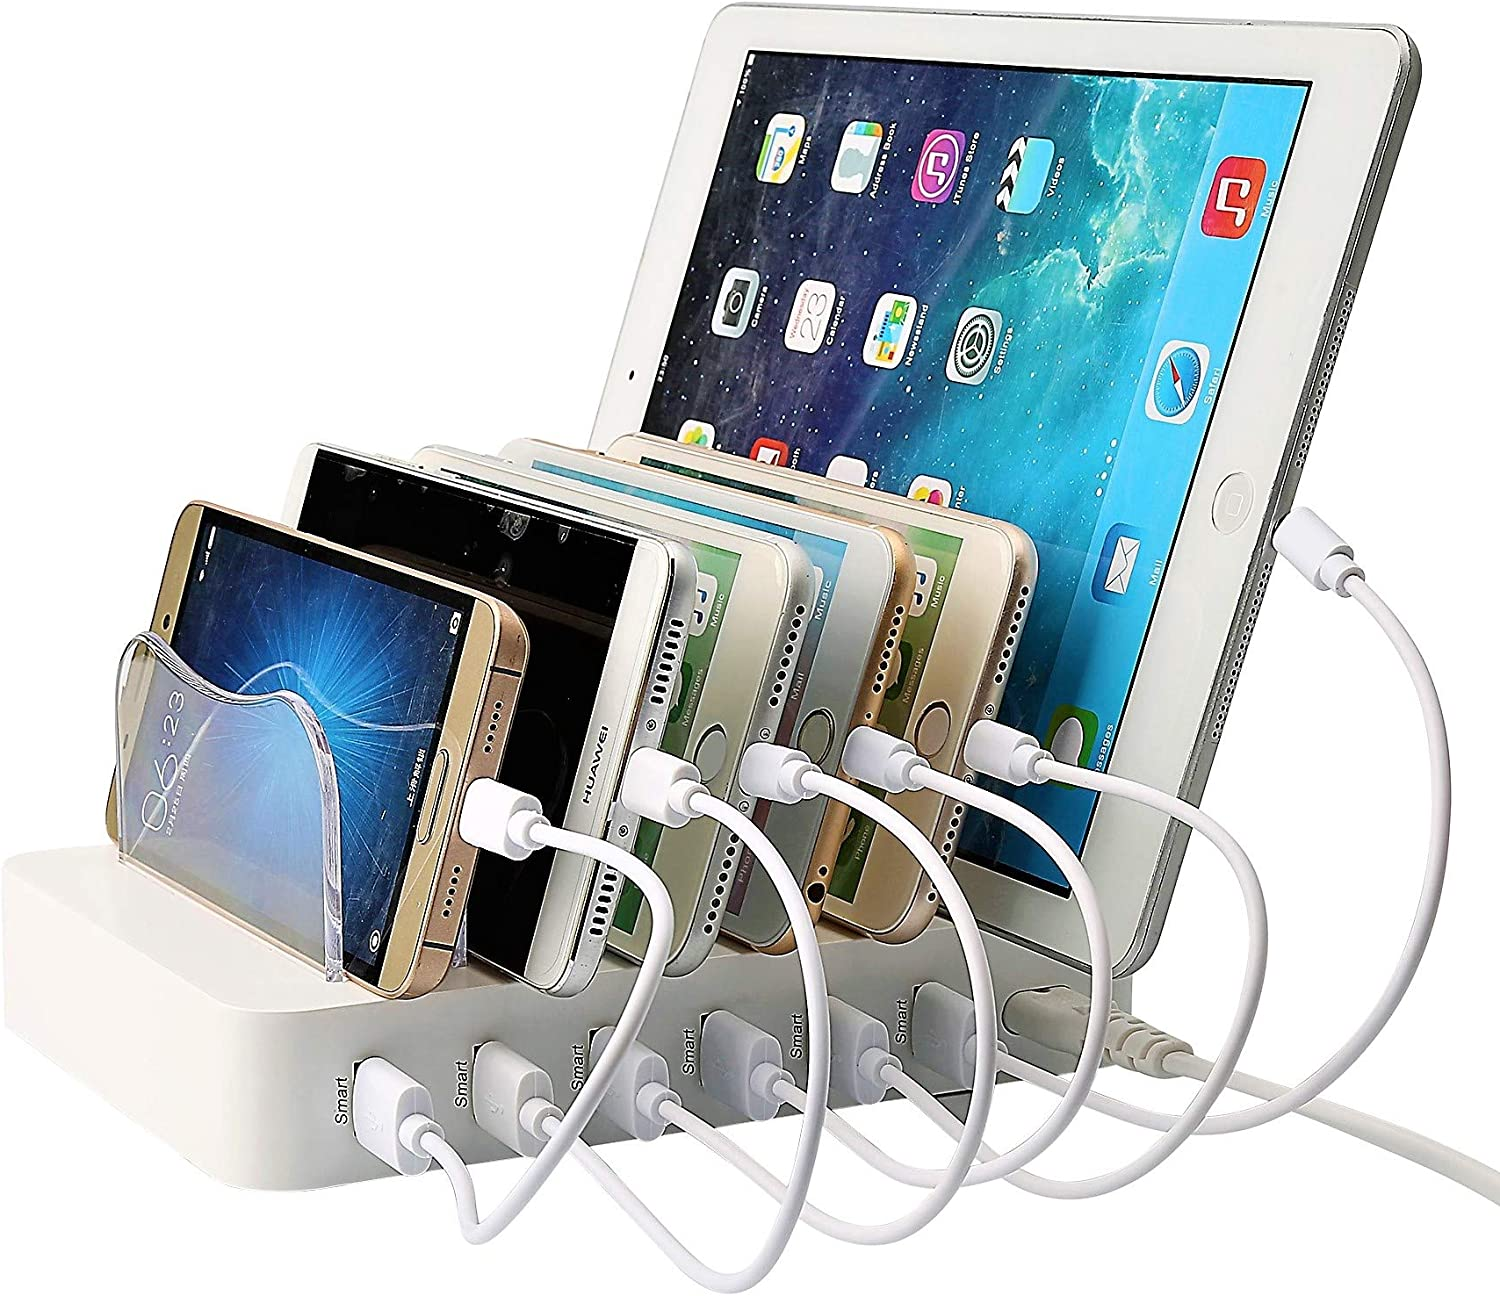 Marshon Watt 6-USB Port Fast Charging Station for Multiple Devices--Premium-Grade--Organize All Your Charging Needs--Charger Station Includes Short Cables Compatible with Apple and Android Devices